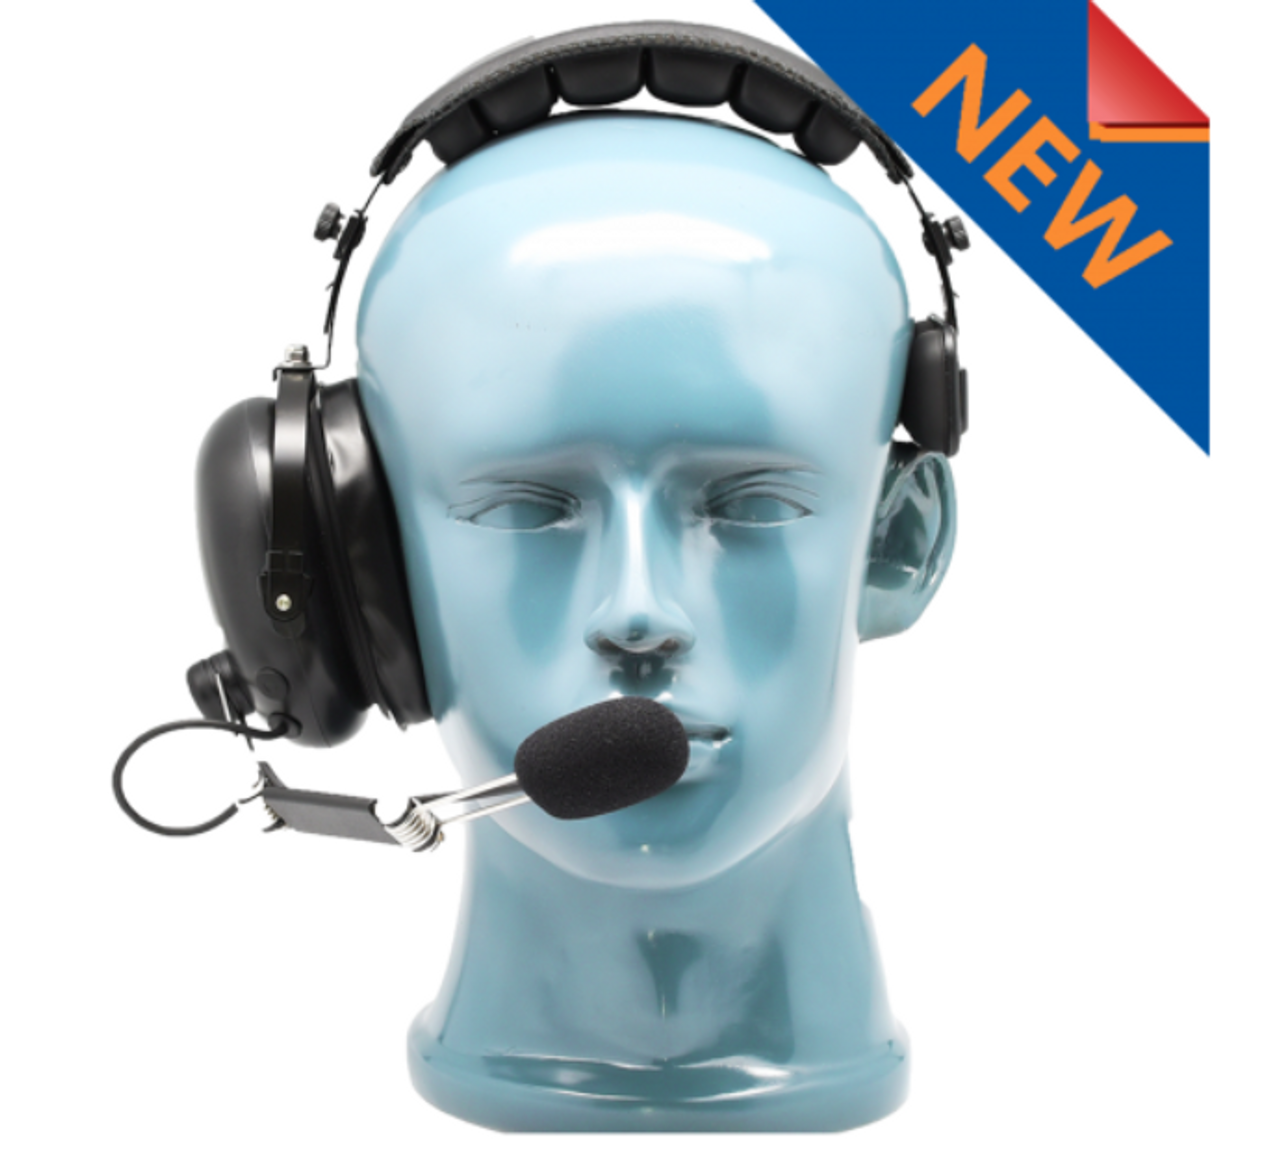 National 2 Way Single Muff Headset with Noise Canceling Microphone